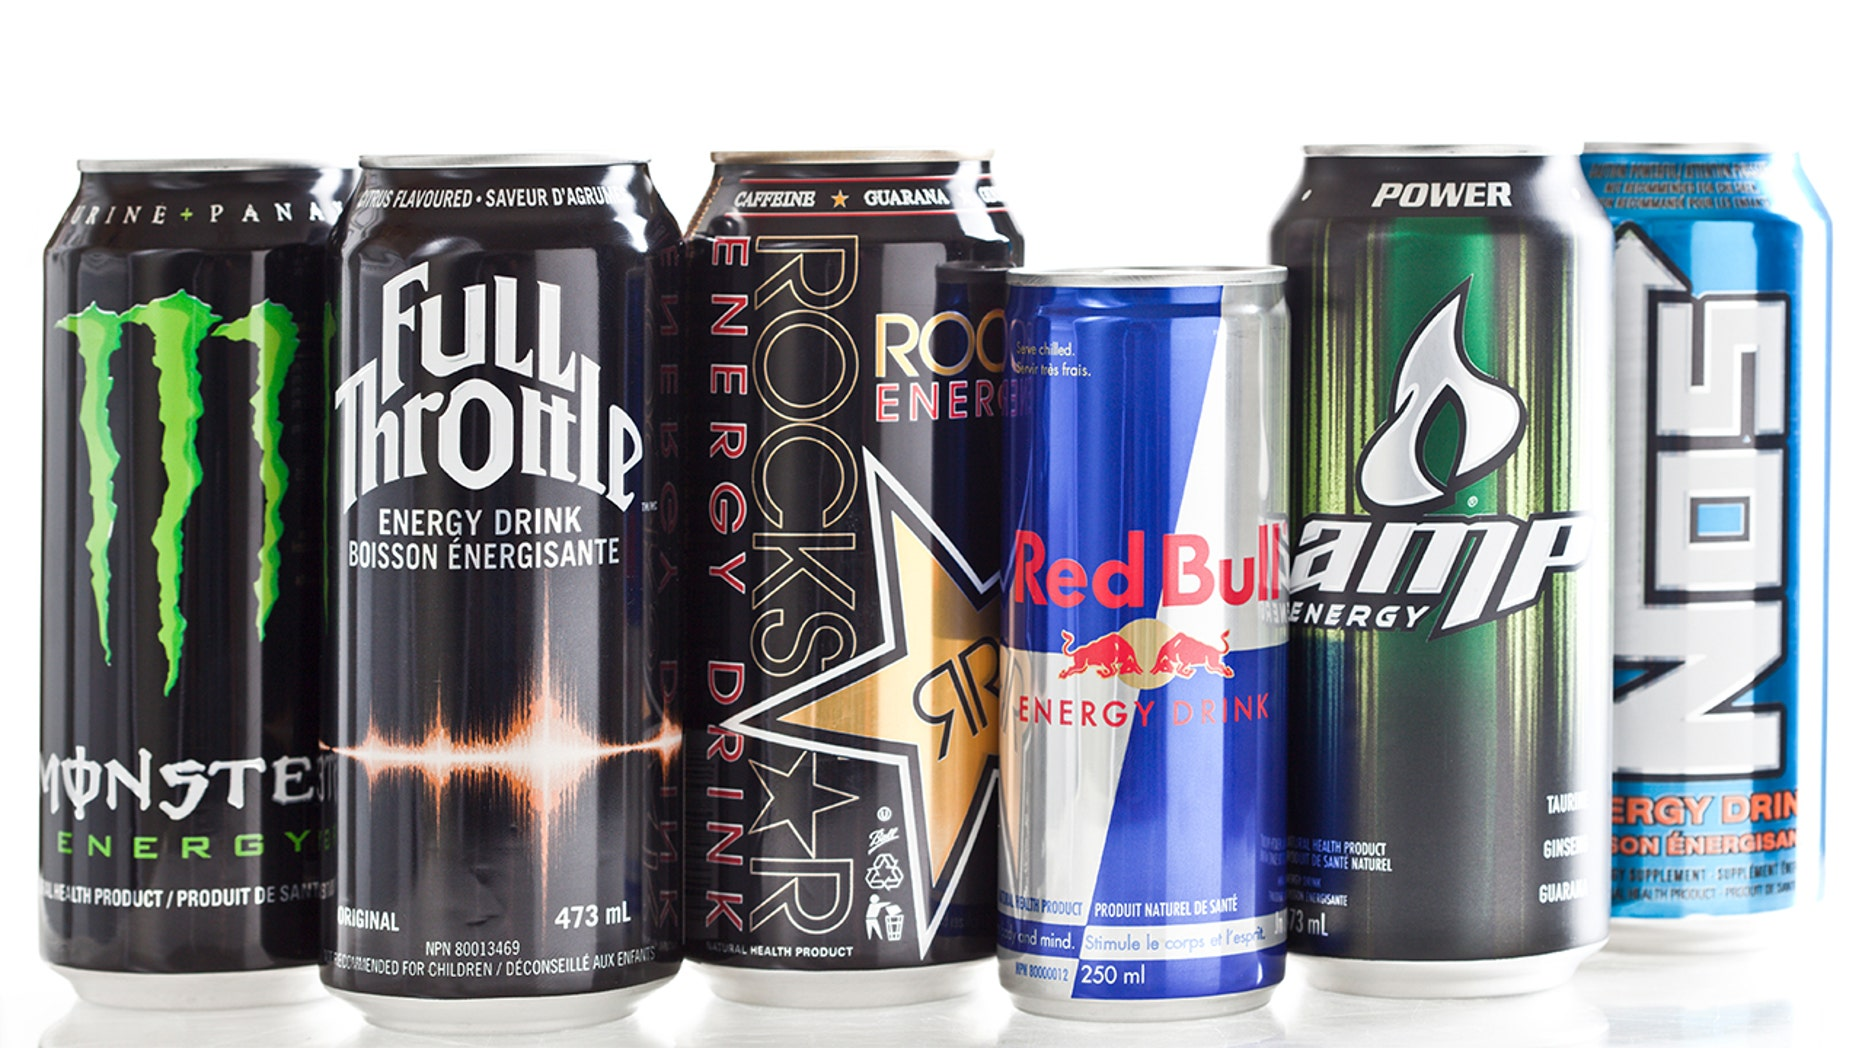 New research suggests a link between energy drinks and cocaine use